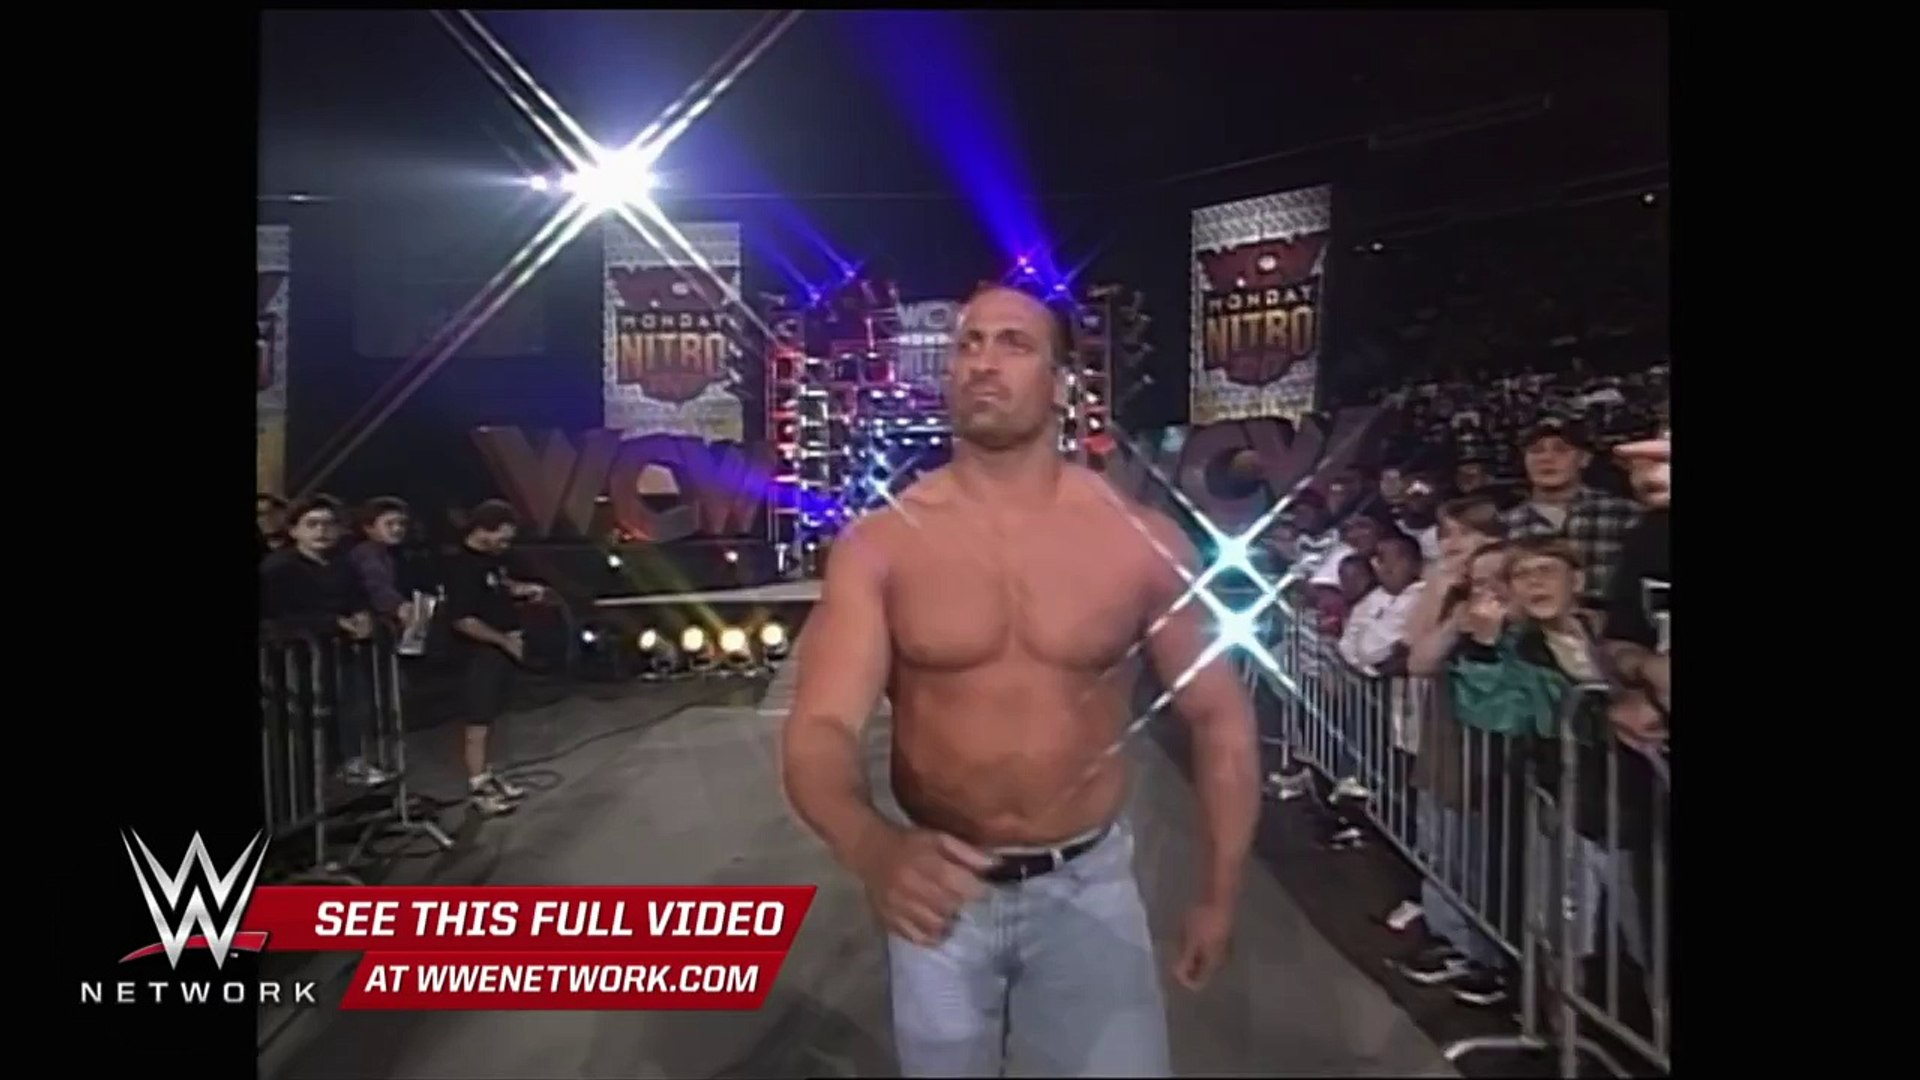 Rowdy Roddy gives a local athlete the opportunity of a lifetime: WCW Nitro, Mar. 1997: WWE Netw